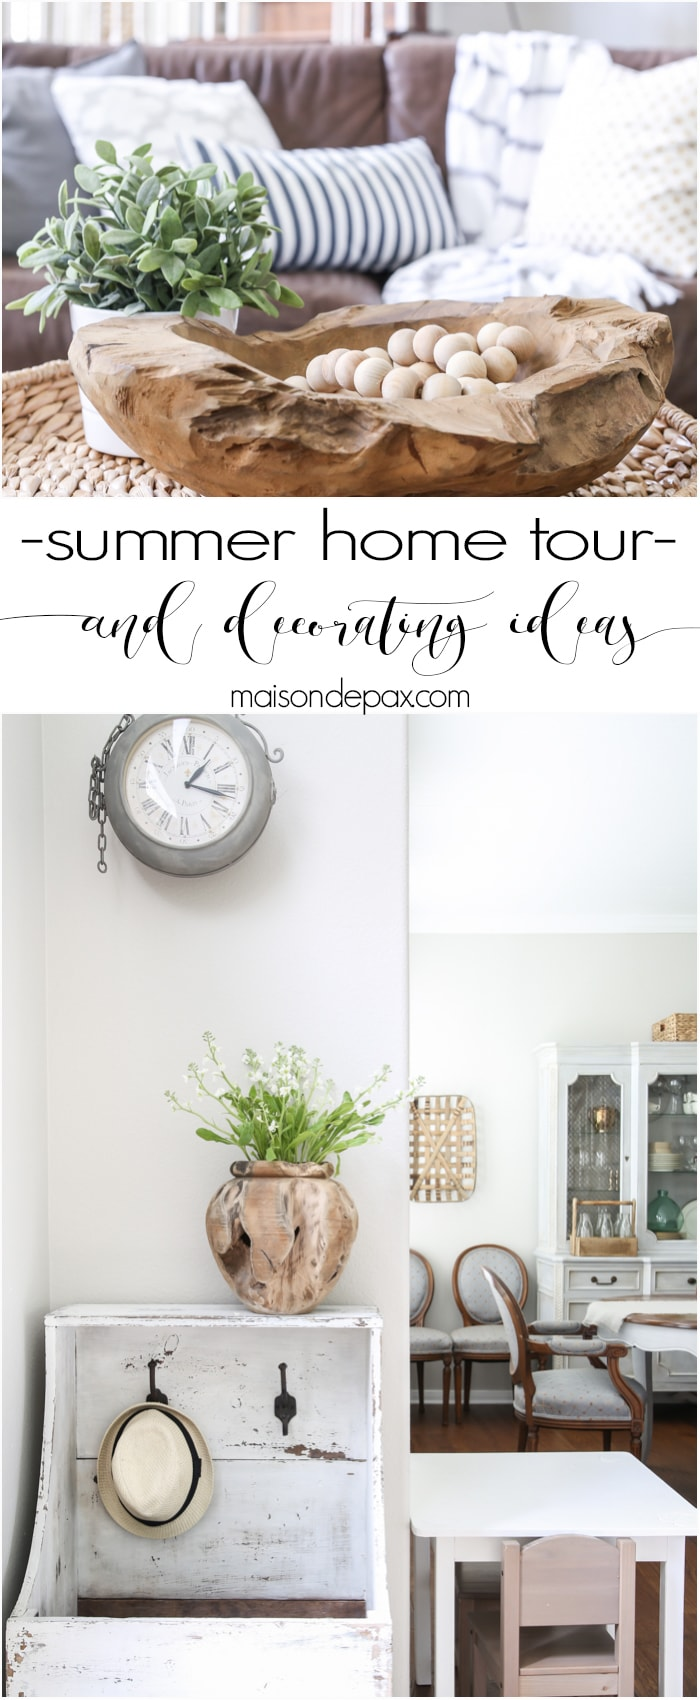 Beautiful summer home tour with lots of whites, raw wood tones, and simple decorating ideas- Maison de Pax